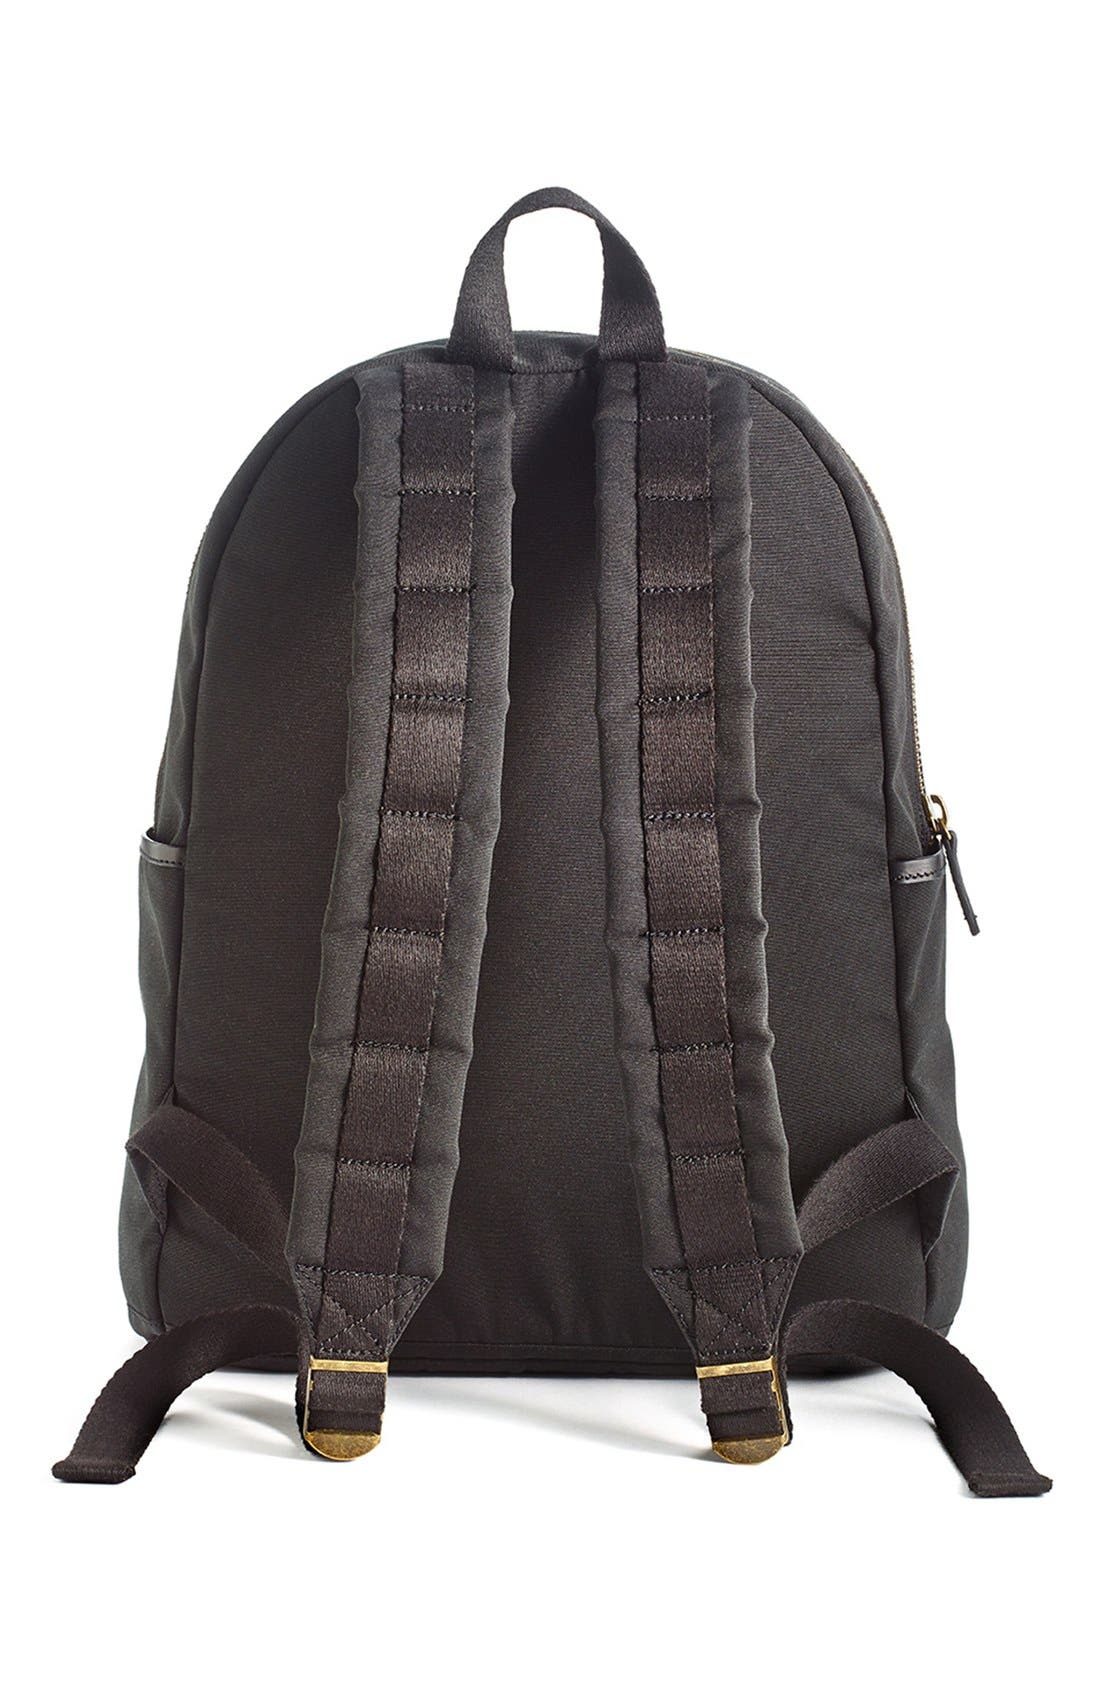 'Union' Water Resistant Backpack with Leather Trim,                             Alternate thumbnail 2, color,                             001